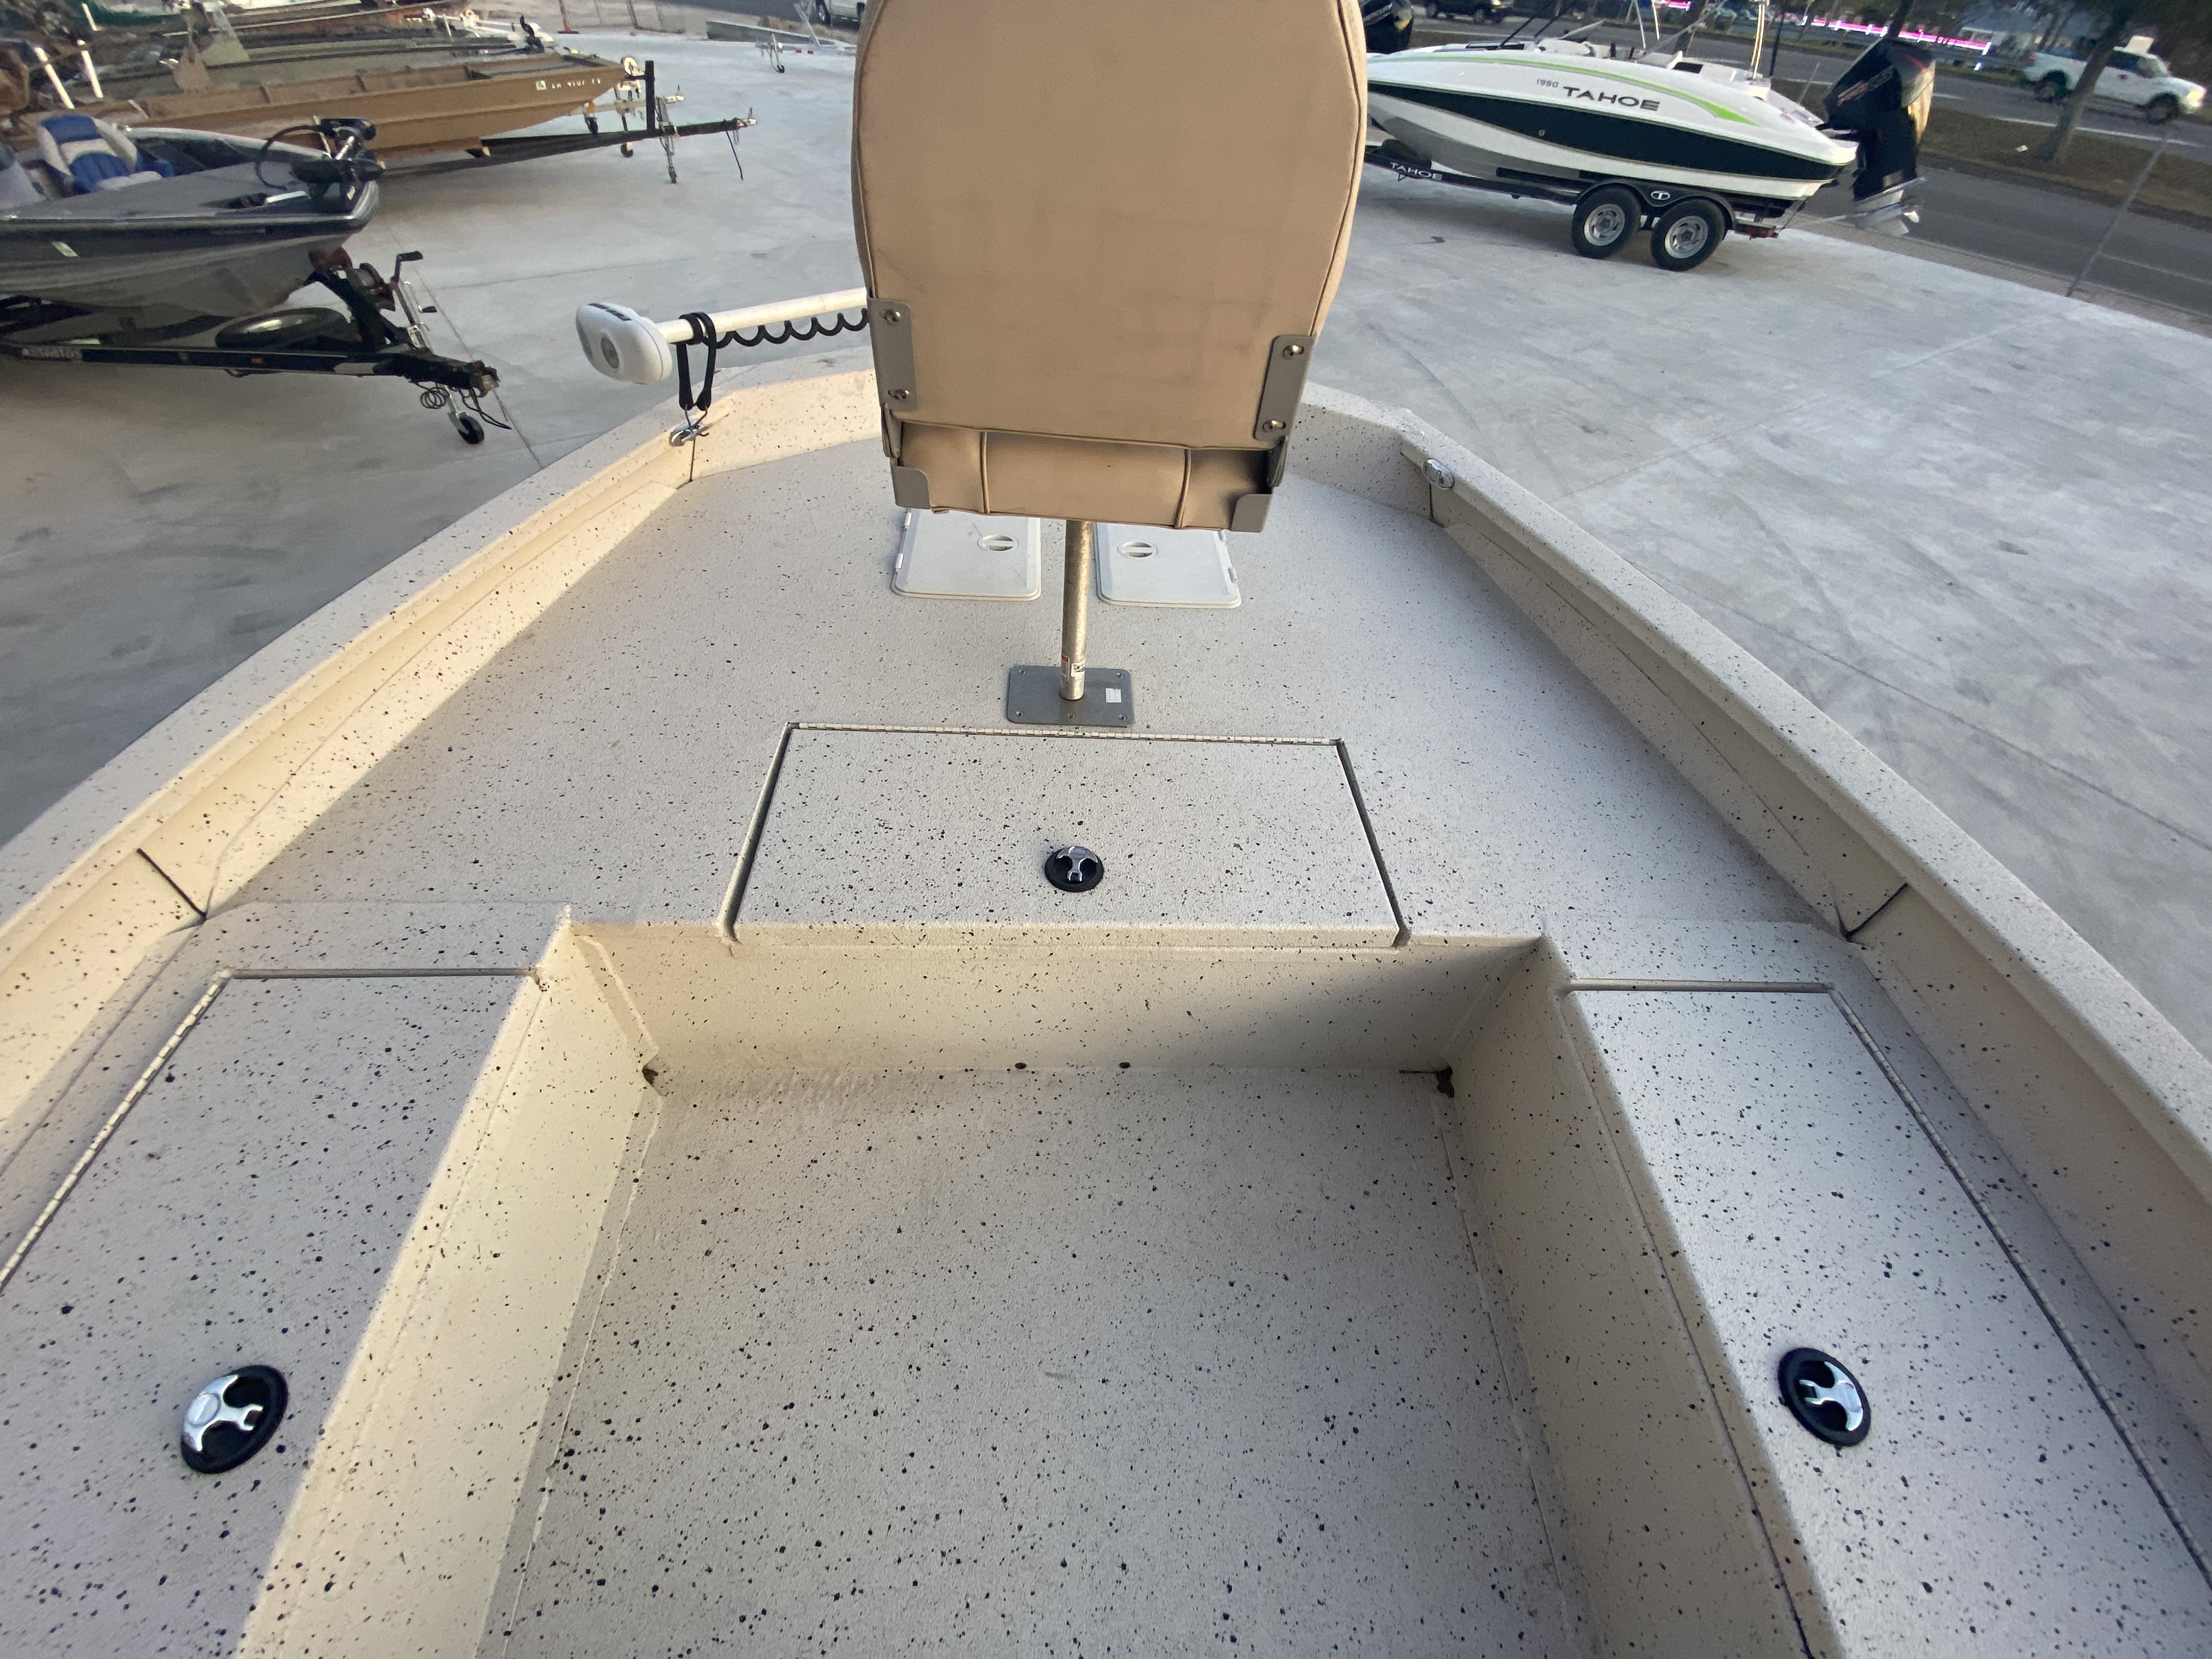 2012 Xpress boat for sale, model of the boat is H24B & Image # 12 of 17